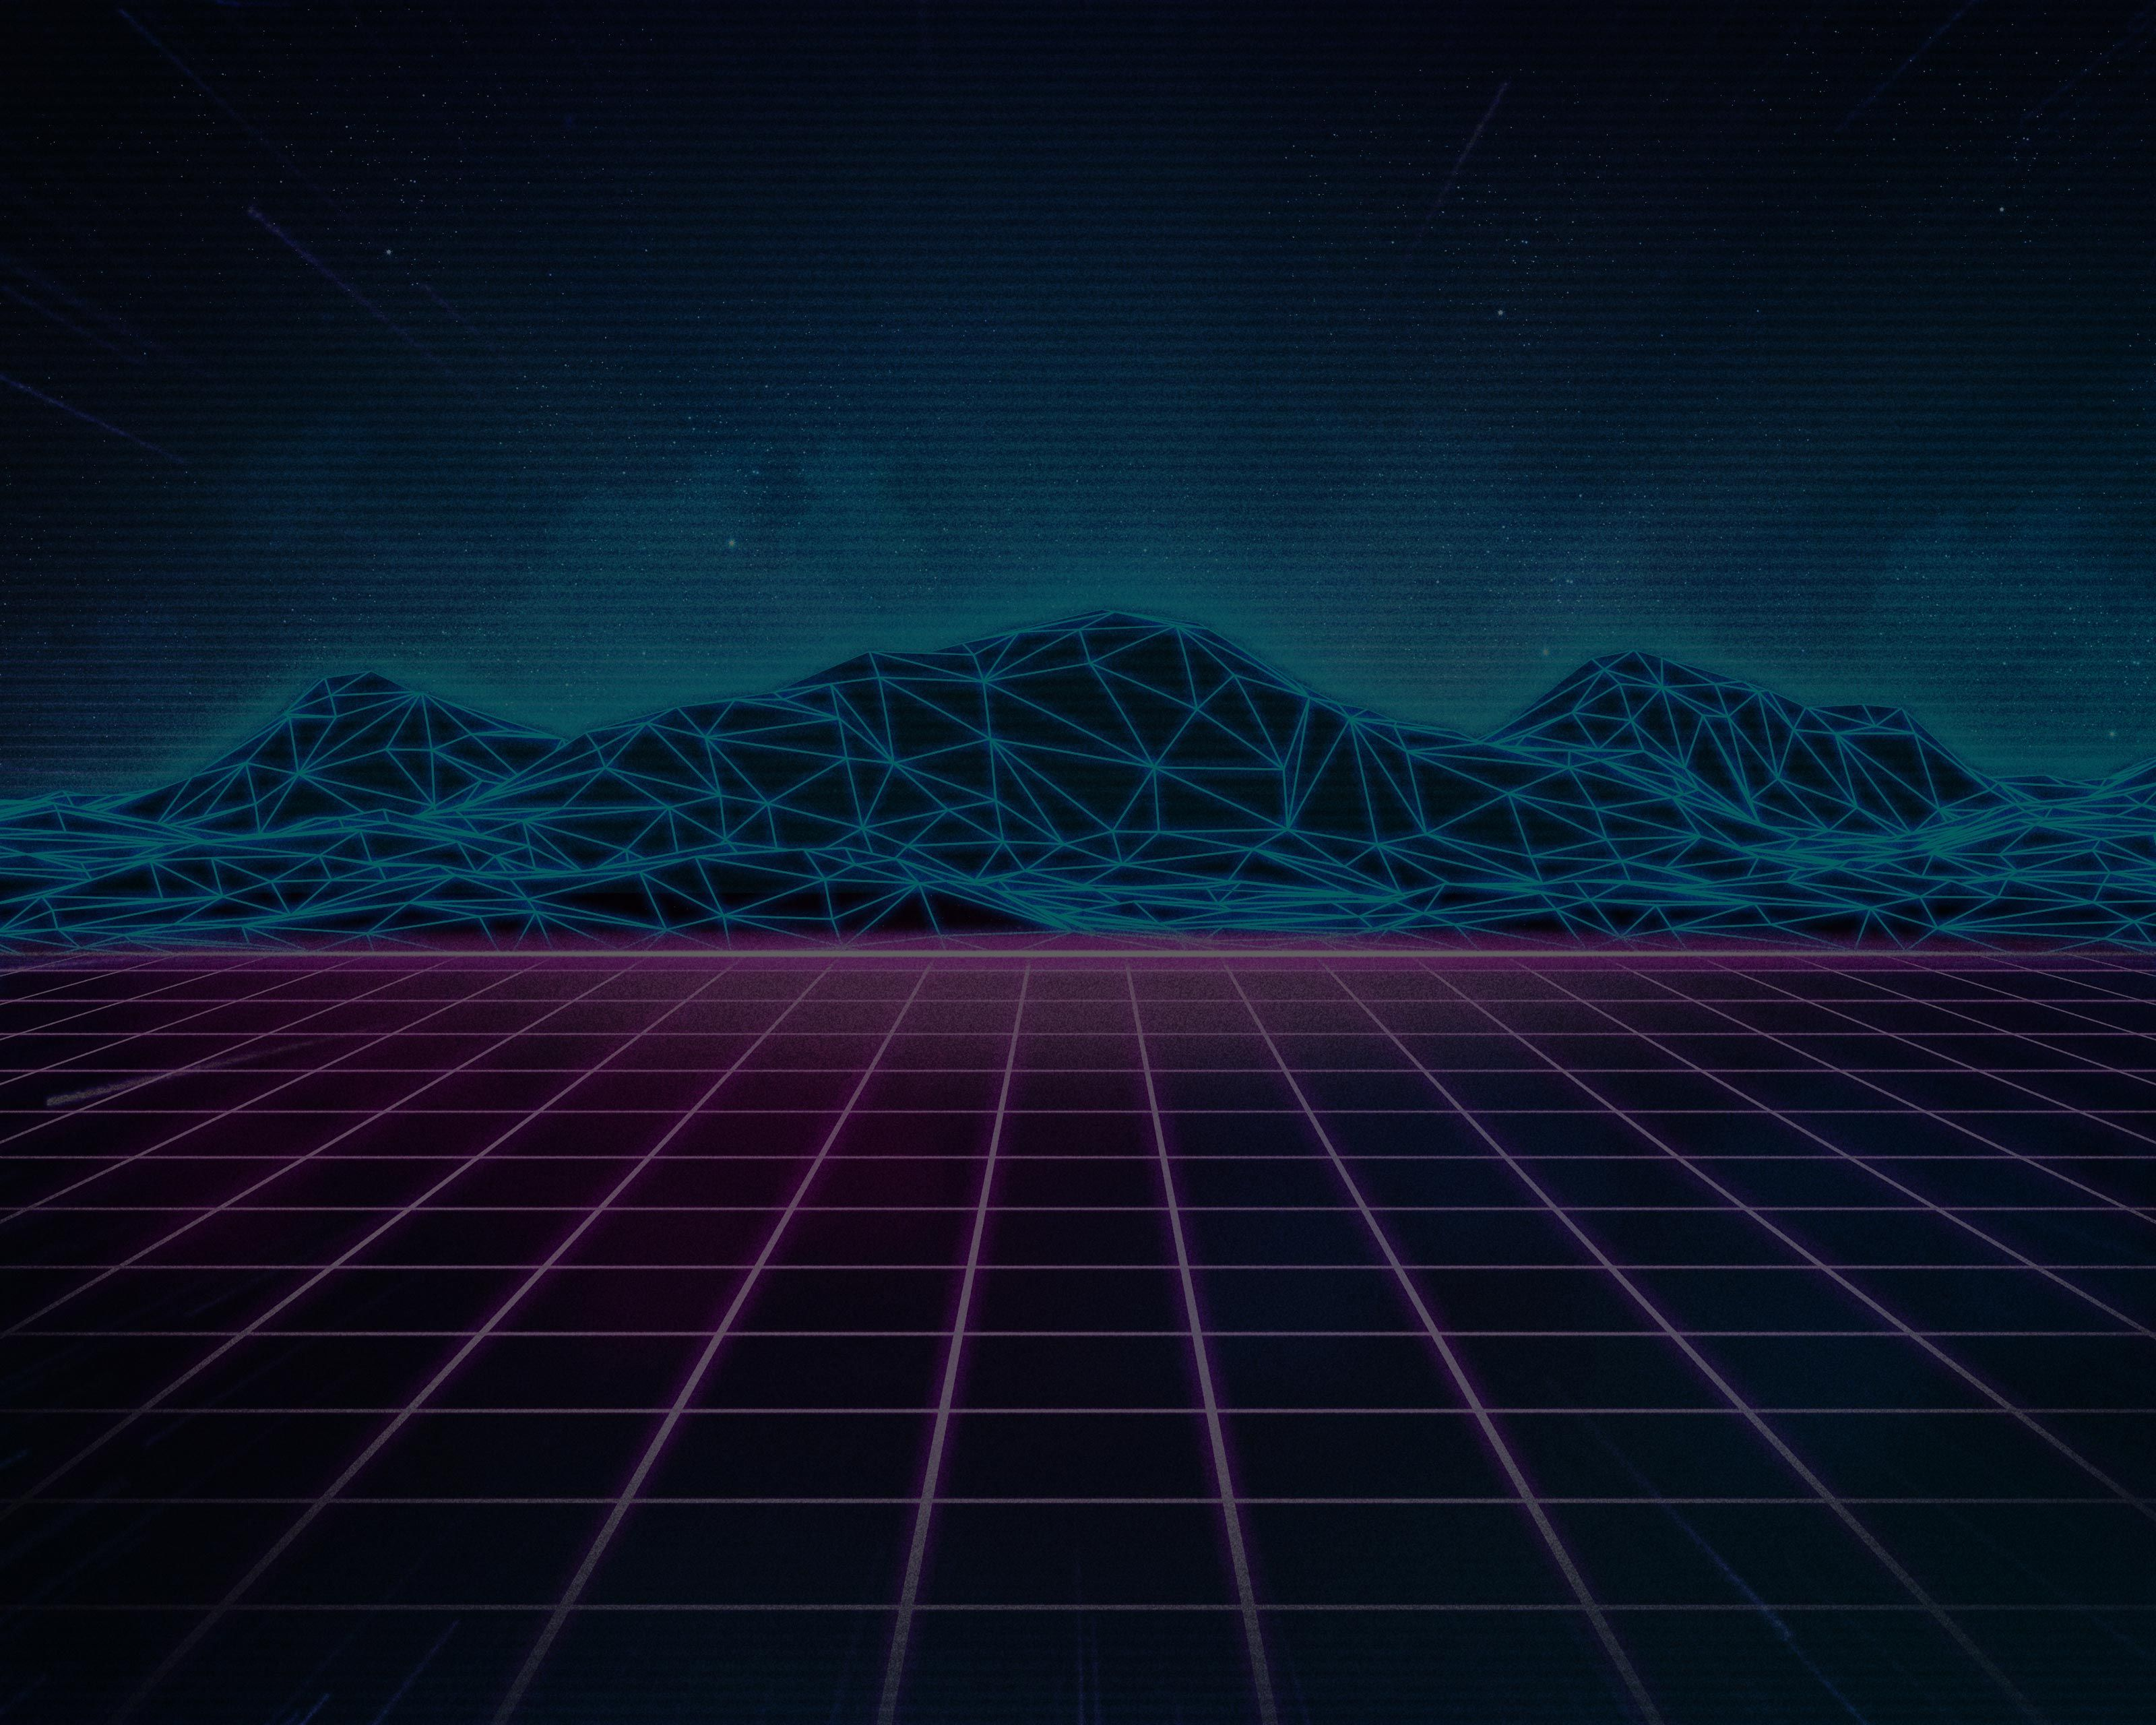 Rad Pack 80s Themed HD Wallpapers Nate Wren Graphic